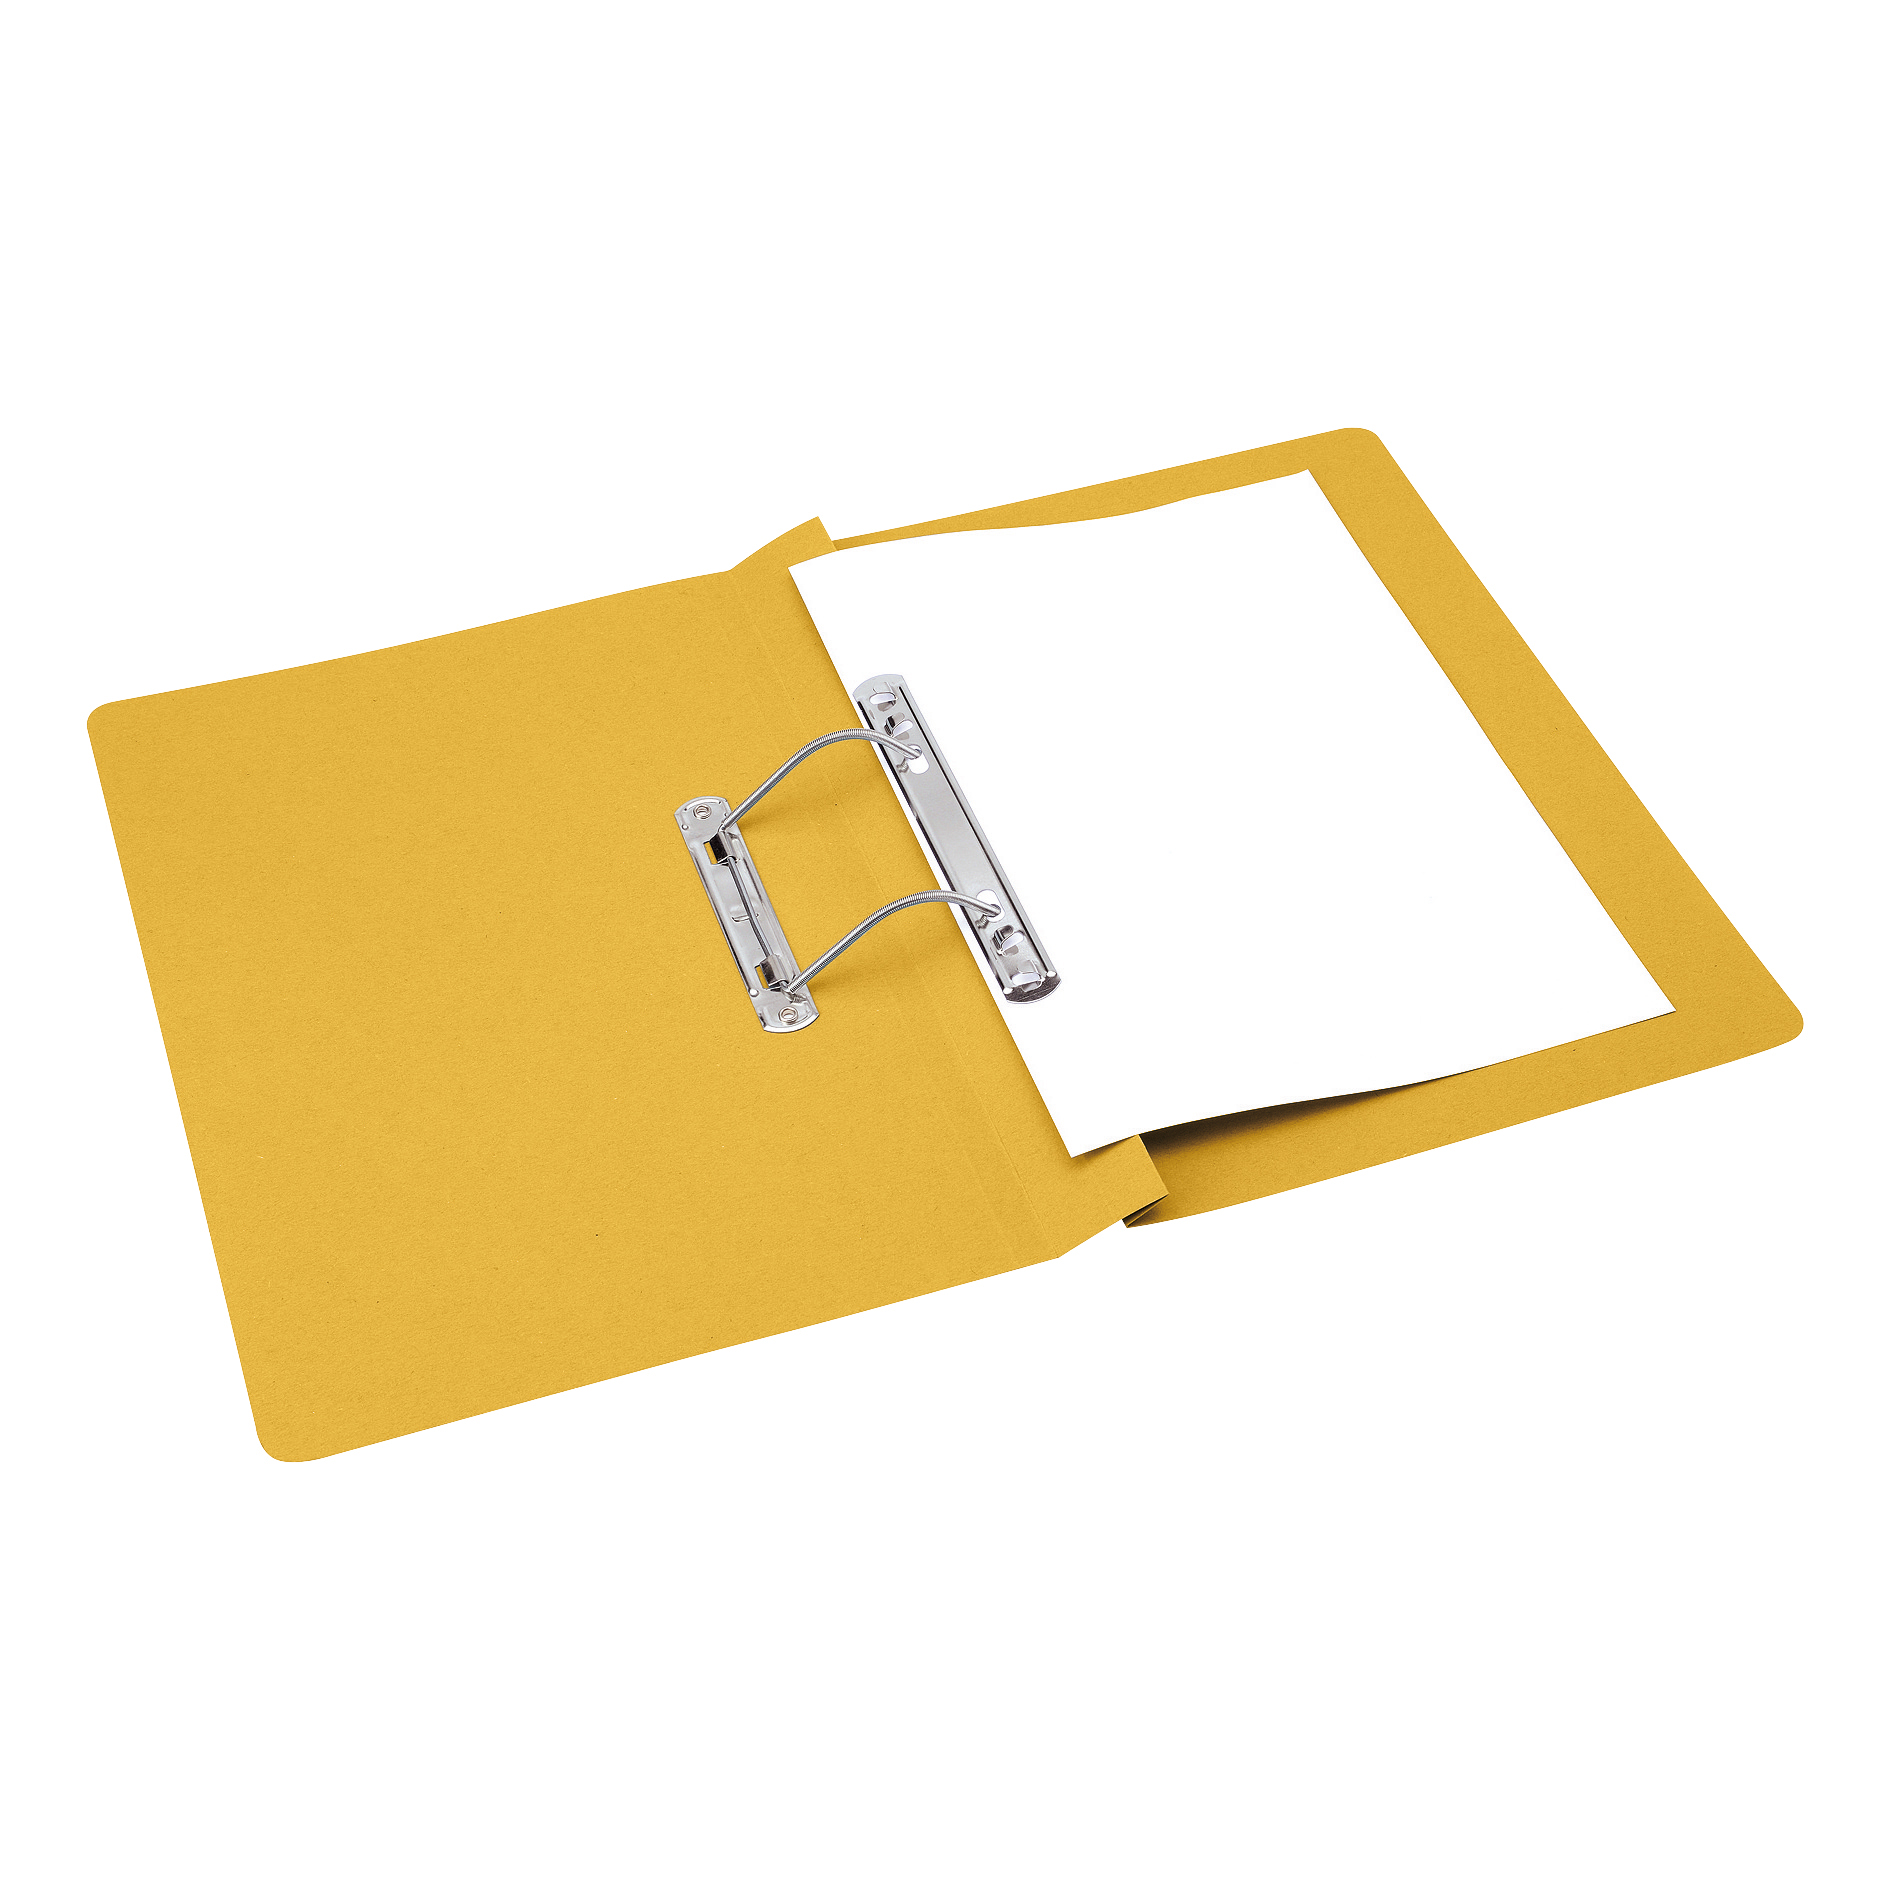 Spring Files 5 Star Office Transfer Spring File Mediumweight 285gsm Capacity 38mm Foolscap Yellow Pack 50